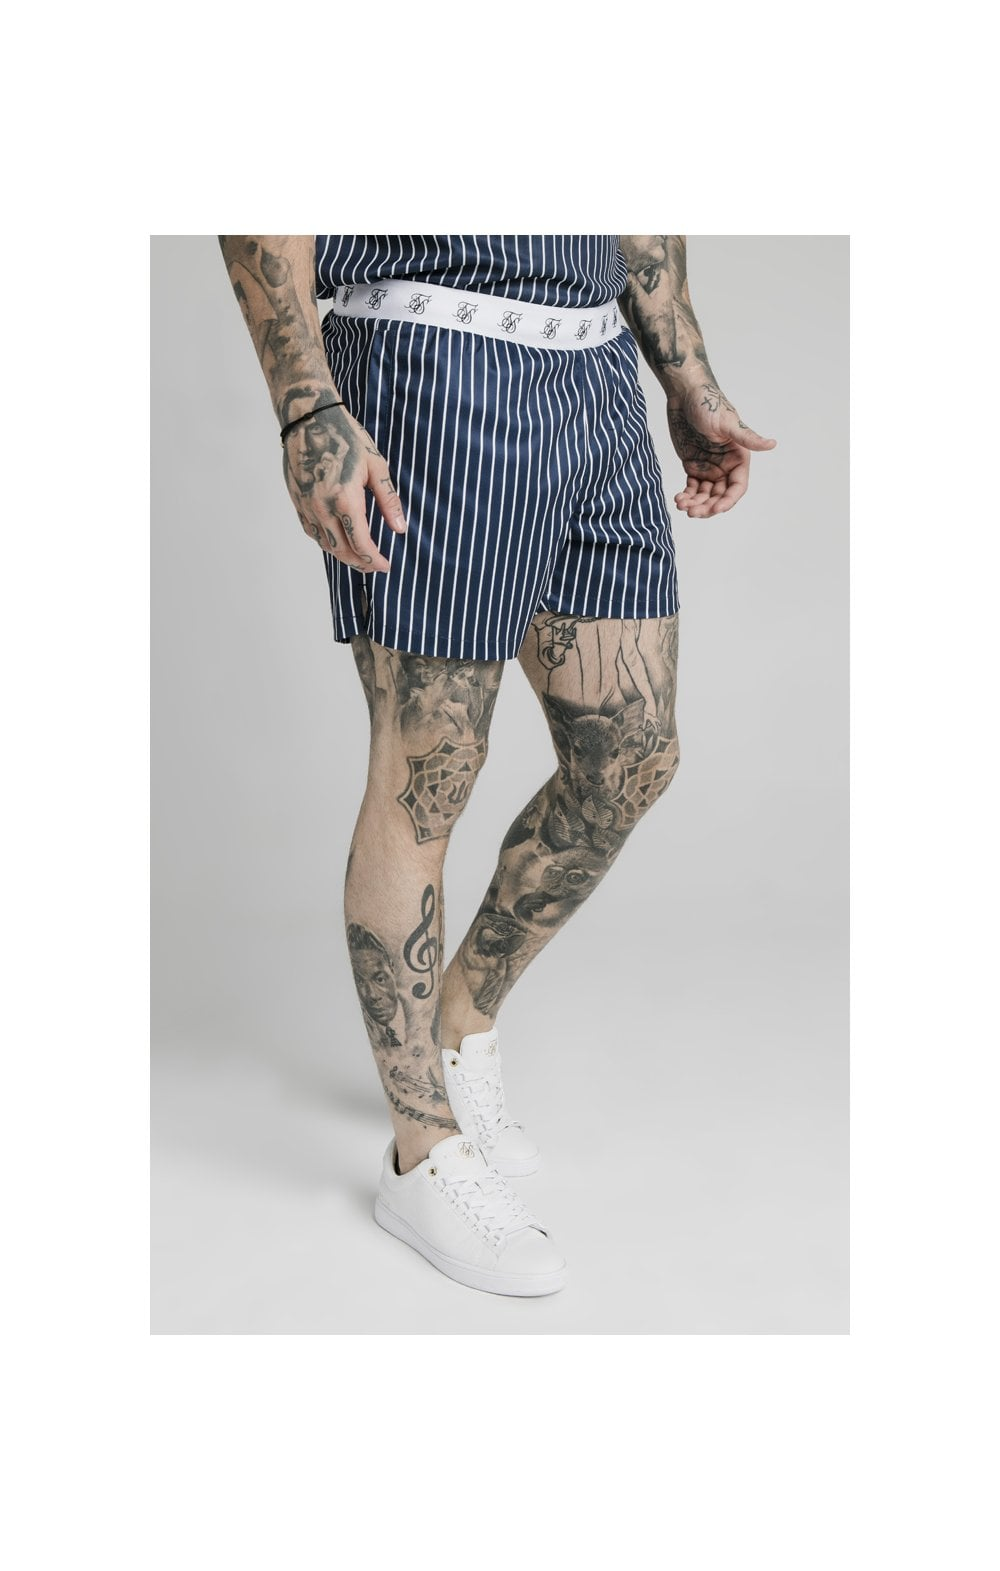 SikSilk Eyelet Elasticated Swim Shorts - Navy & White